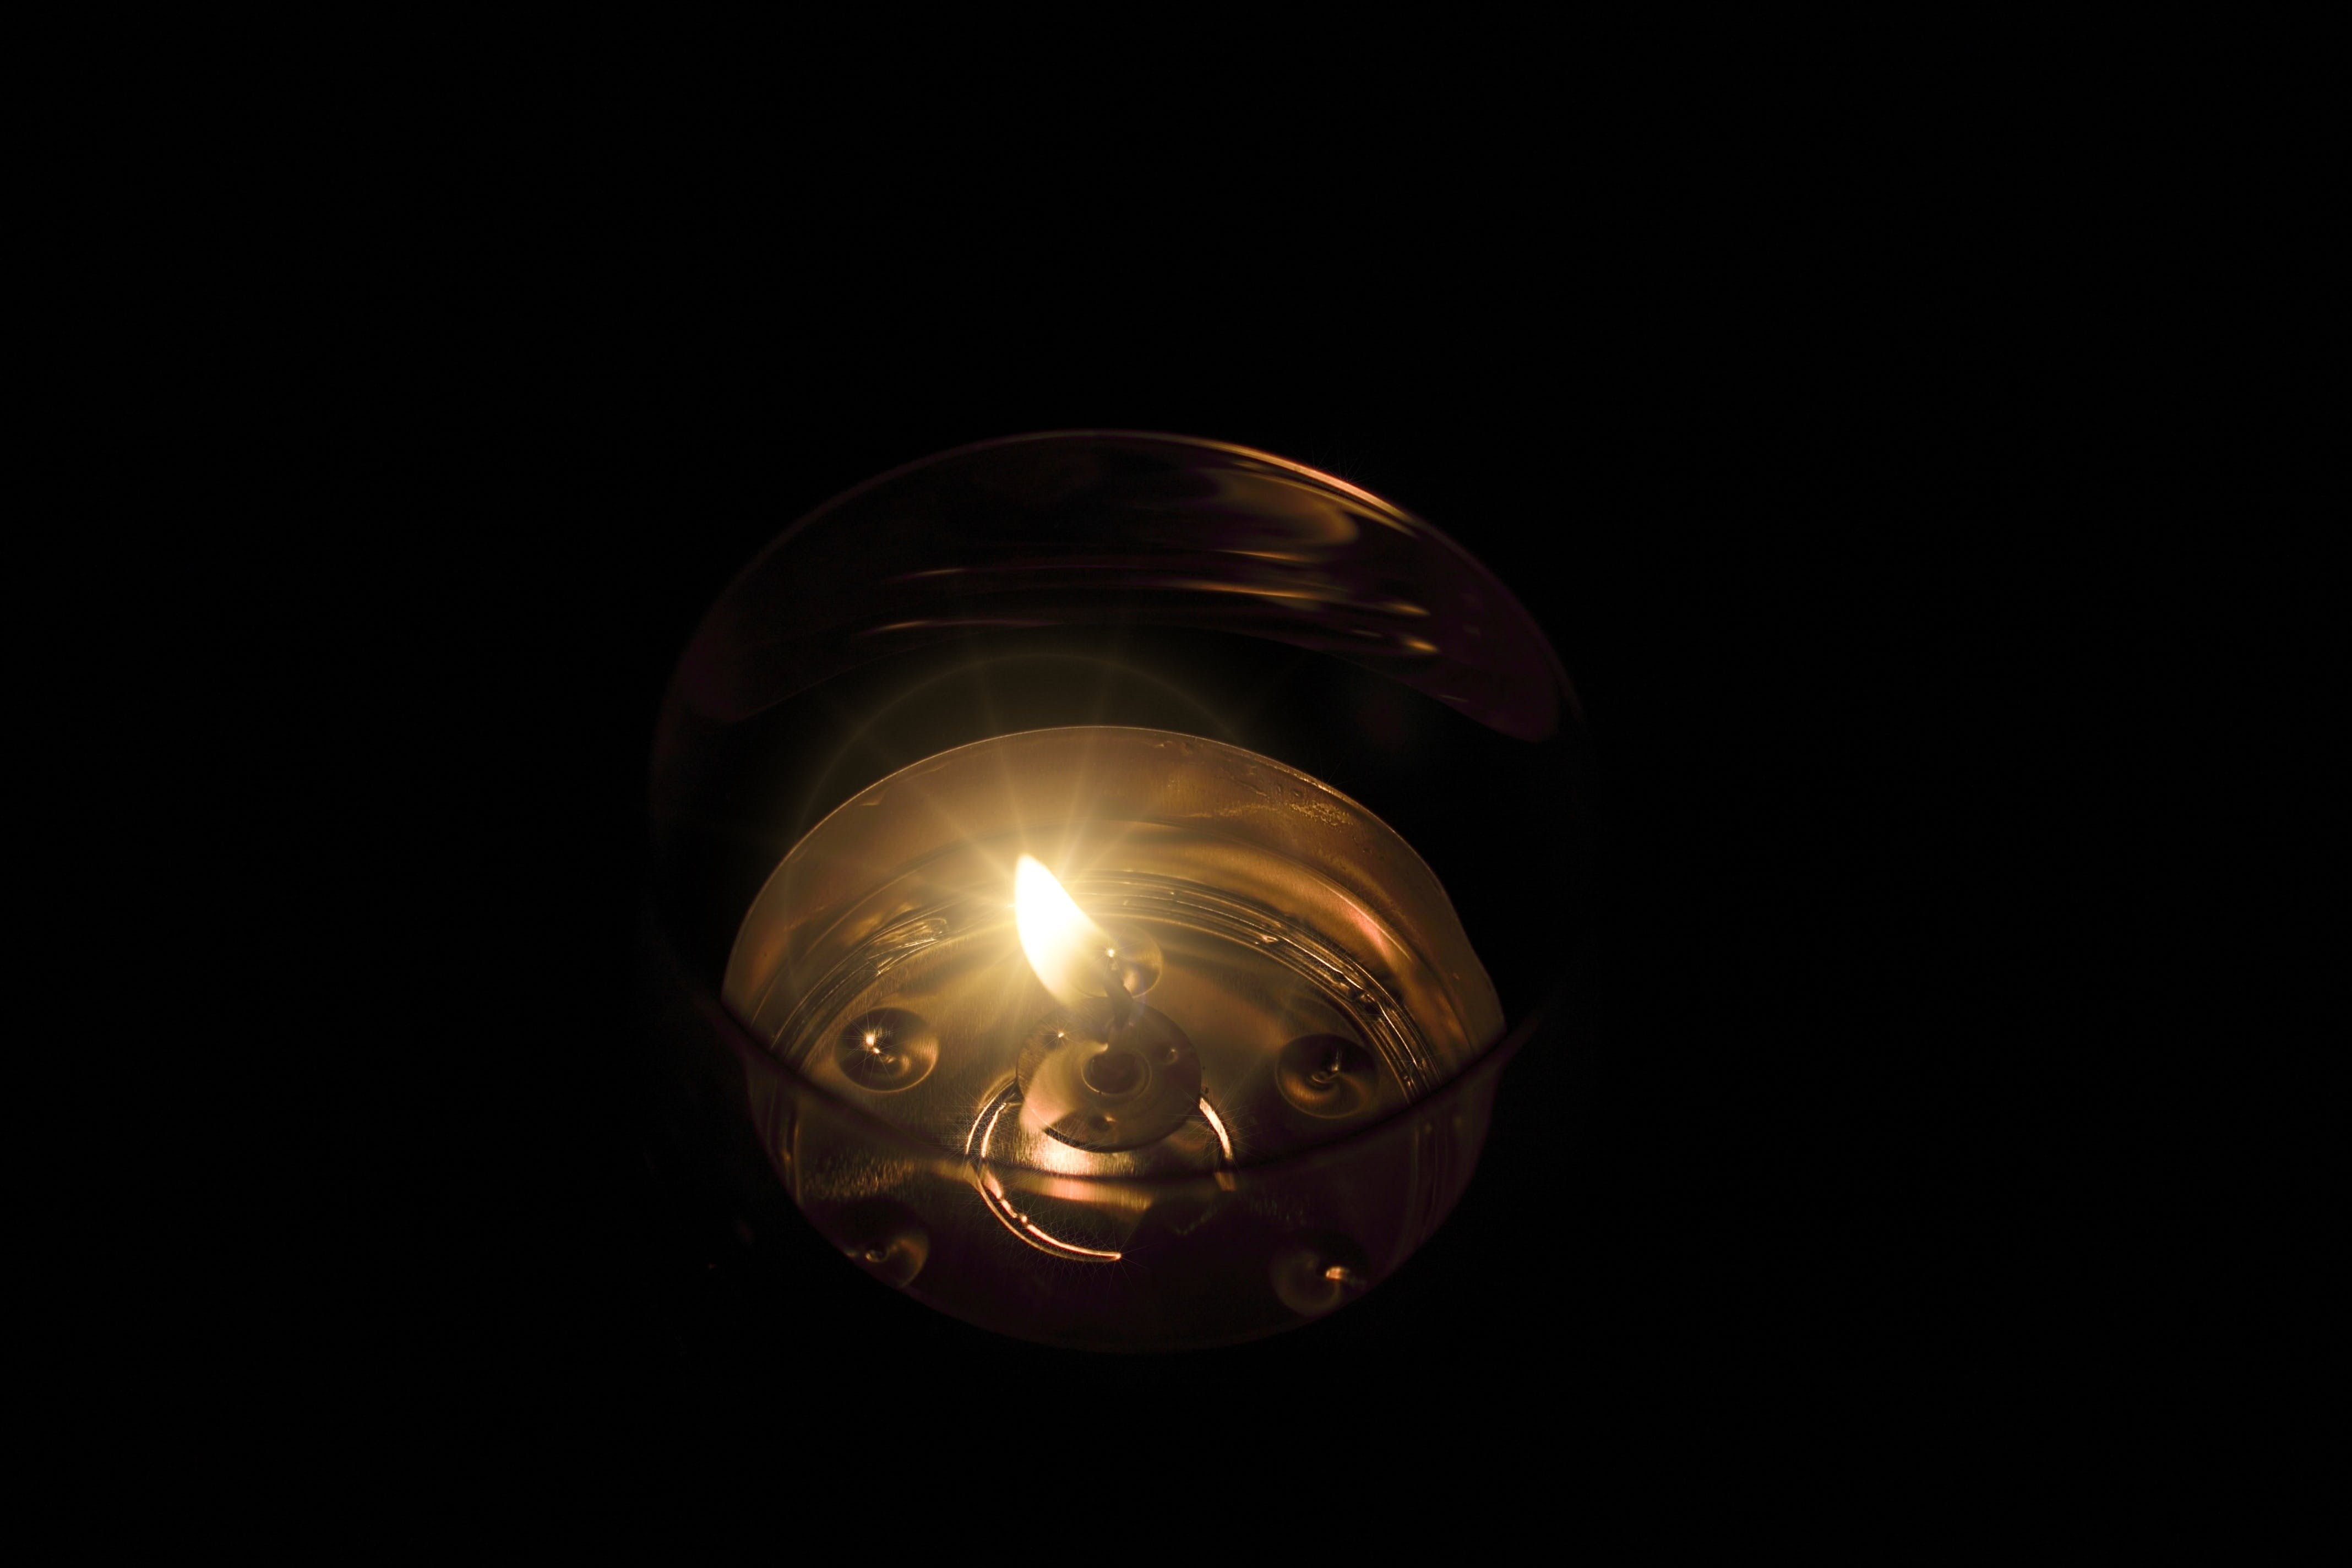 Free stock photo of light, romantic, candlelight, candle